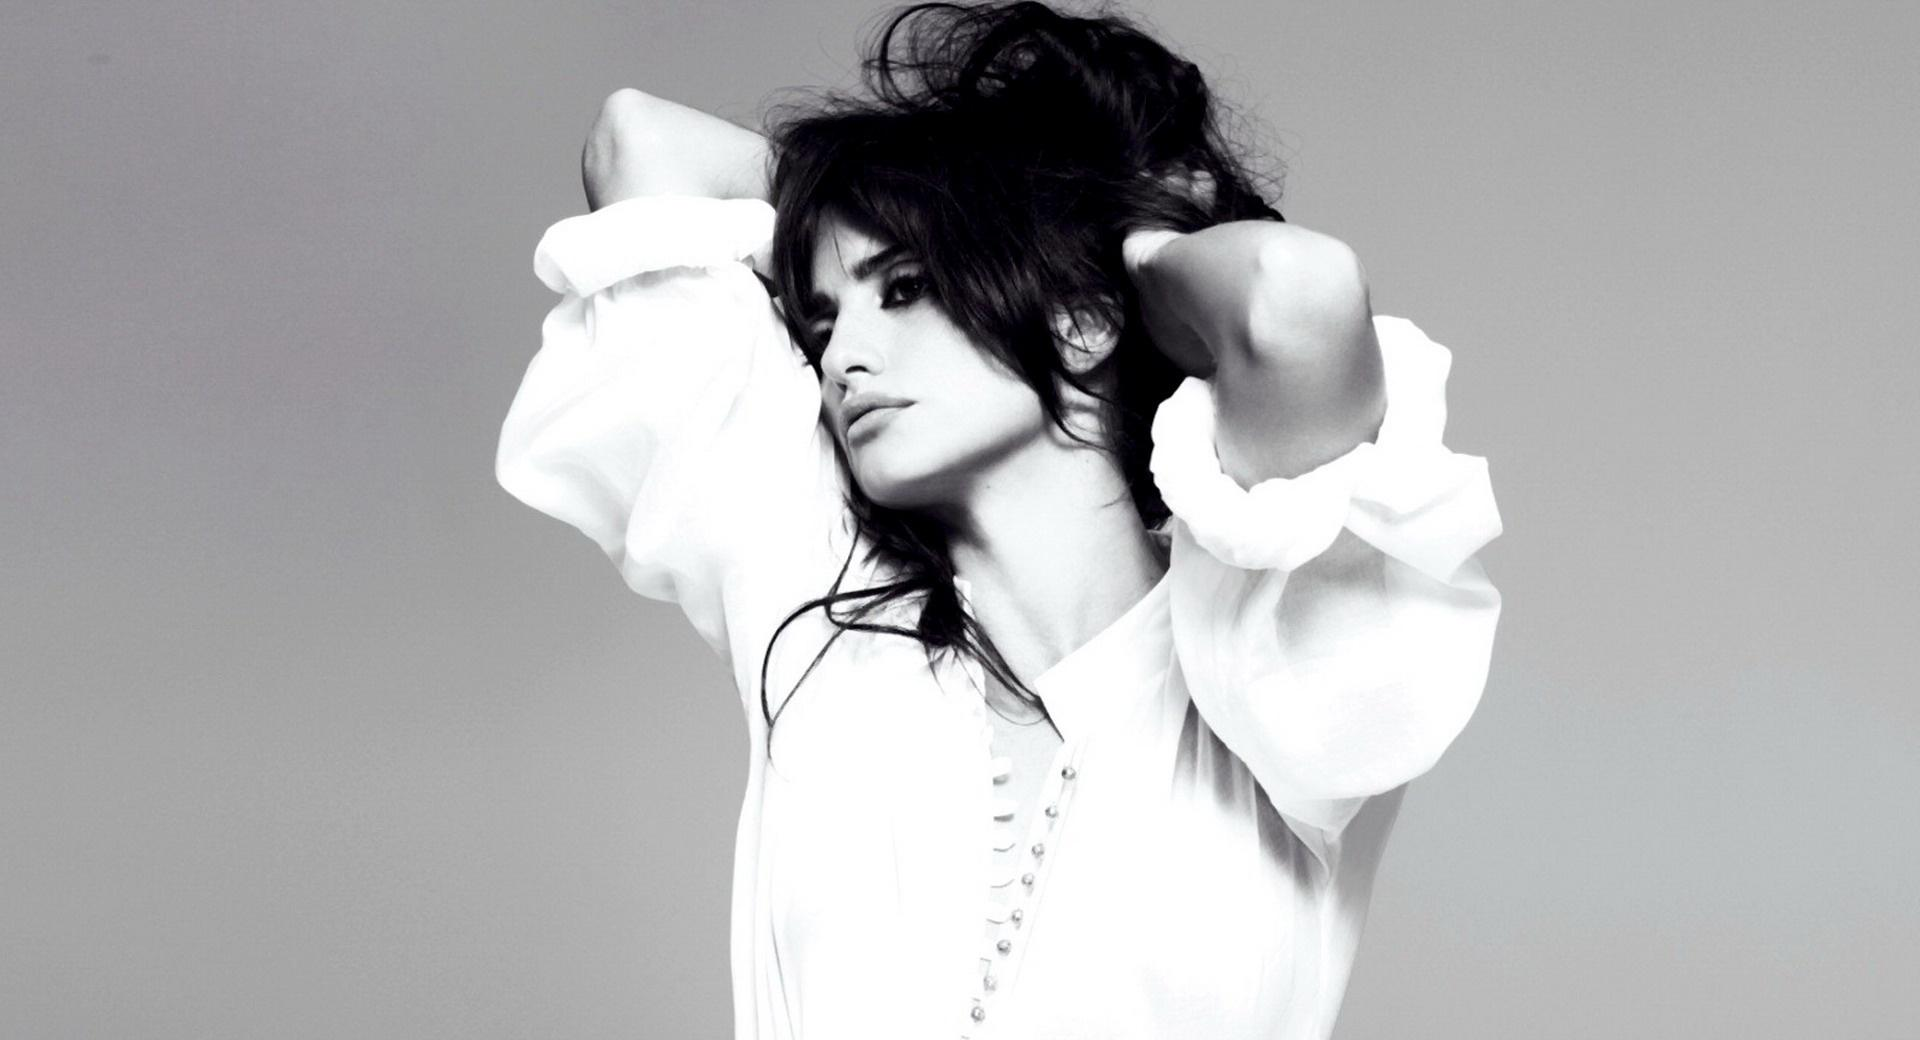 Penelope Cruz 4 at 640 x 1136 iPhone 5 size wallpapers HD quality